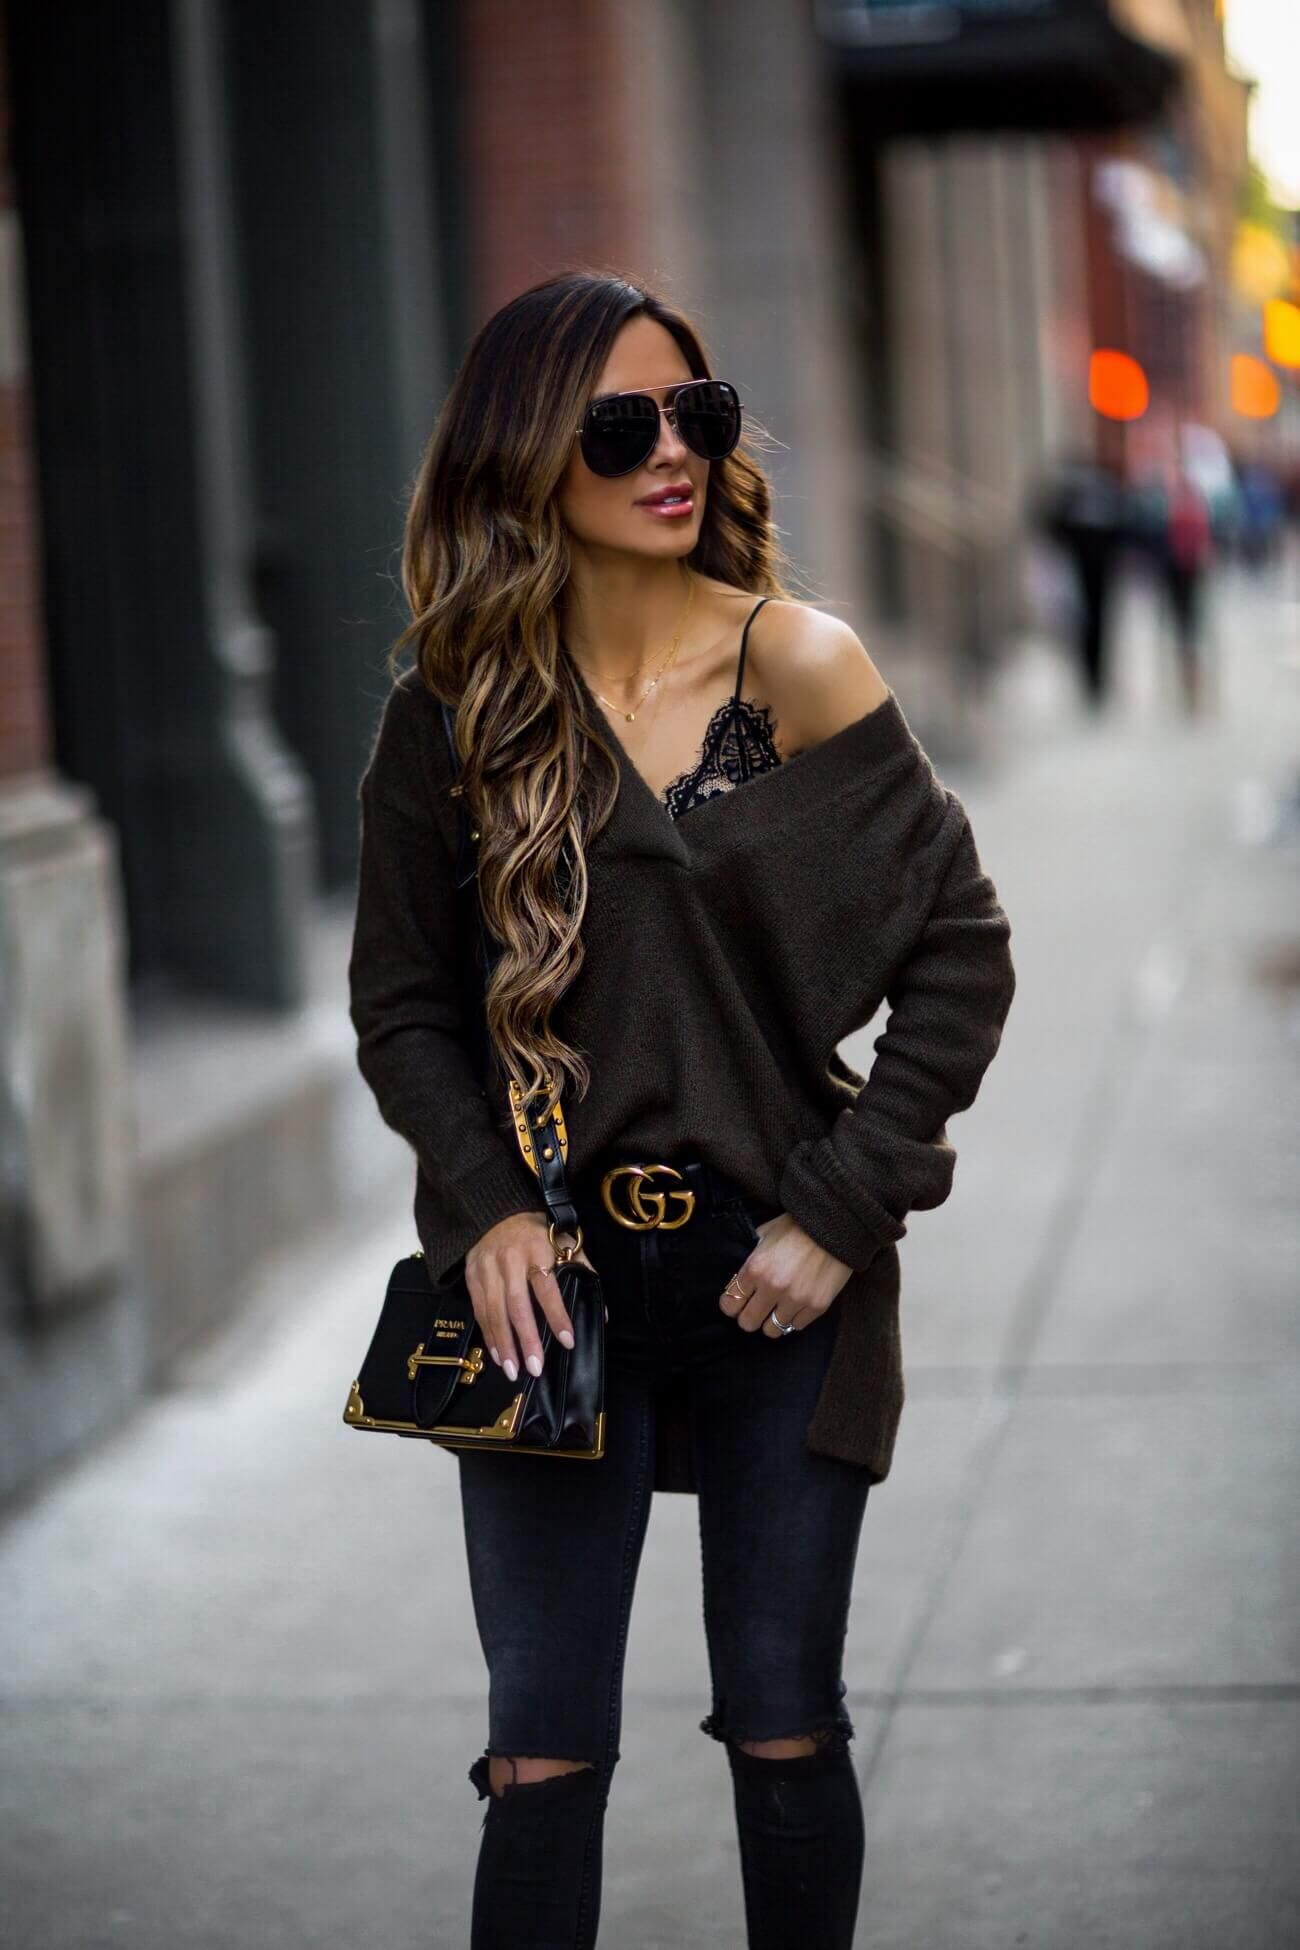 c5d73bf31cac fashion blogger mia mia mine wearing a prada cahier bag and a lace bralette  from shopbop